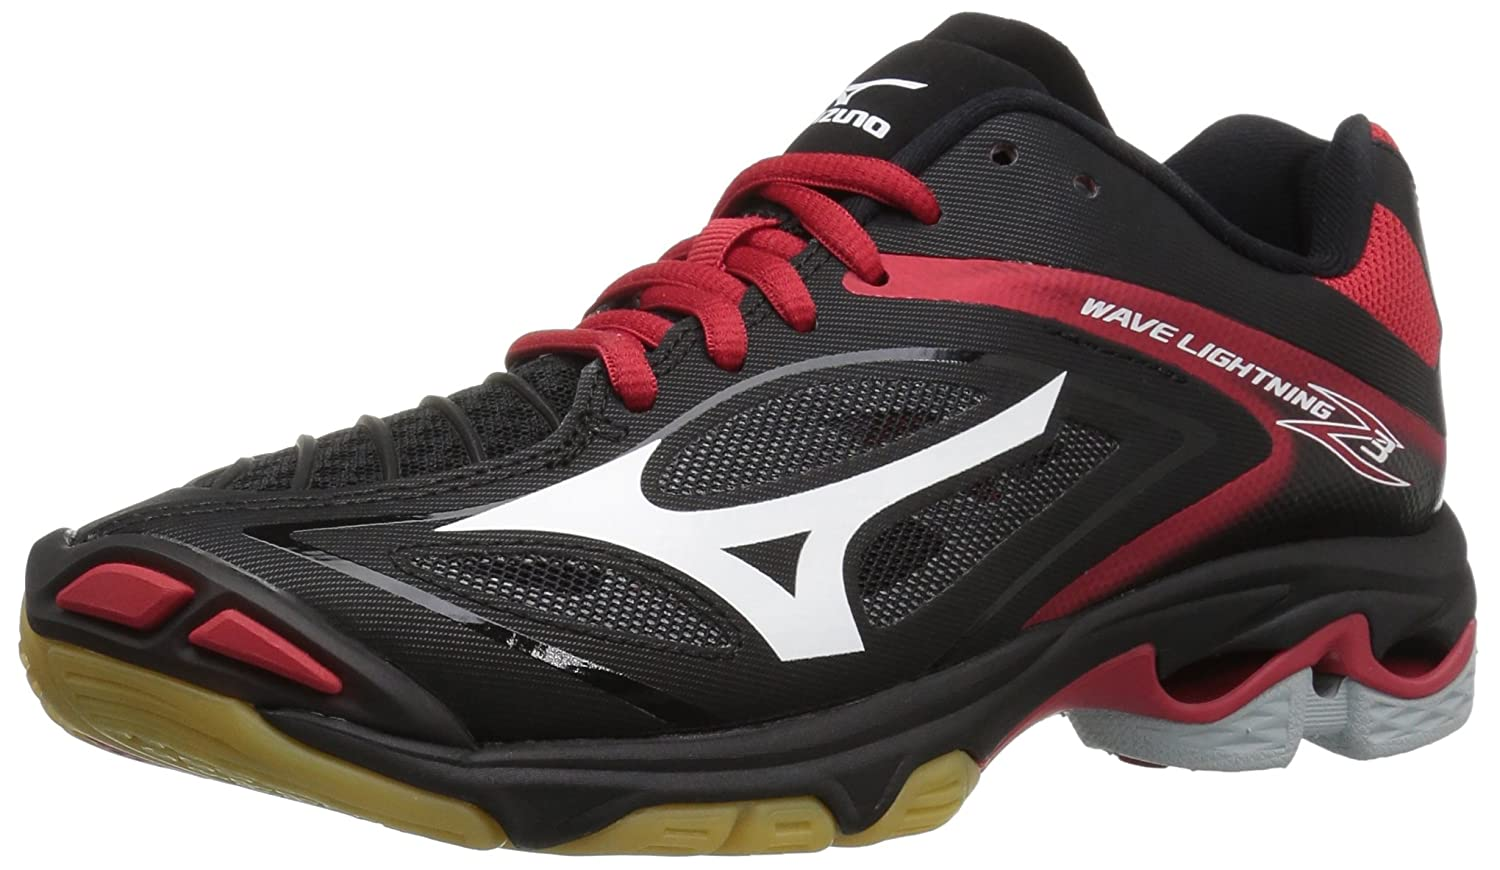 Mizuno Women's Wave Lightning Z3 Volleyball Shoe B01N52JO52 9.5 B(M) US|Black/Red